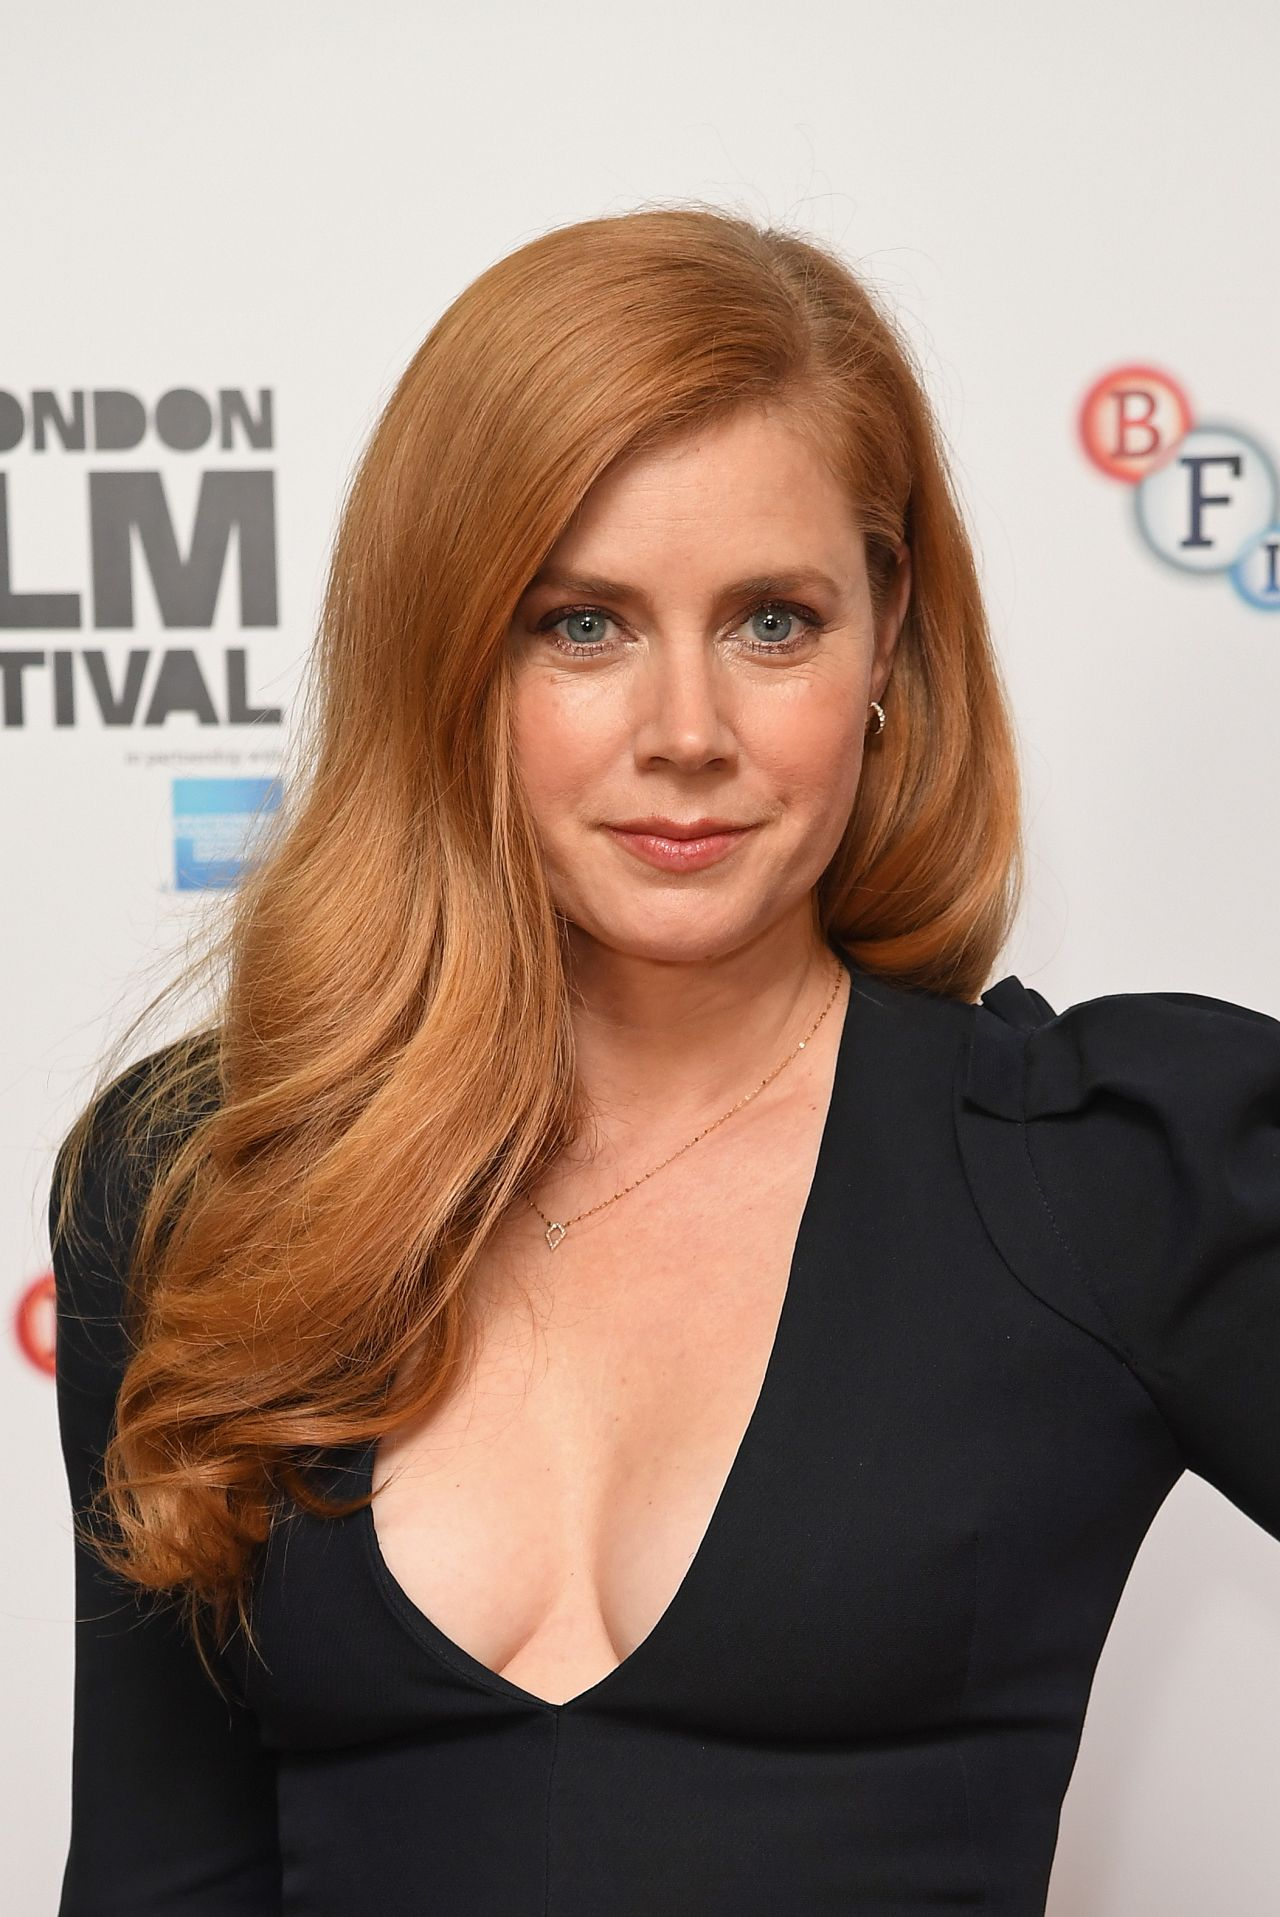 Amy Adams - 60th London Film Festival Arrival Photocall 10/11/2016